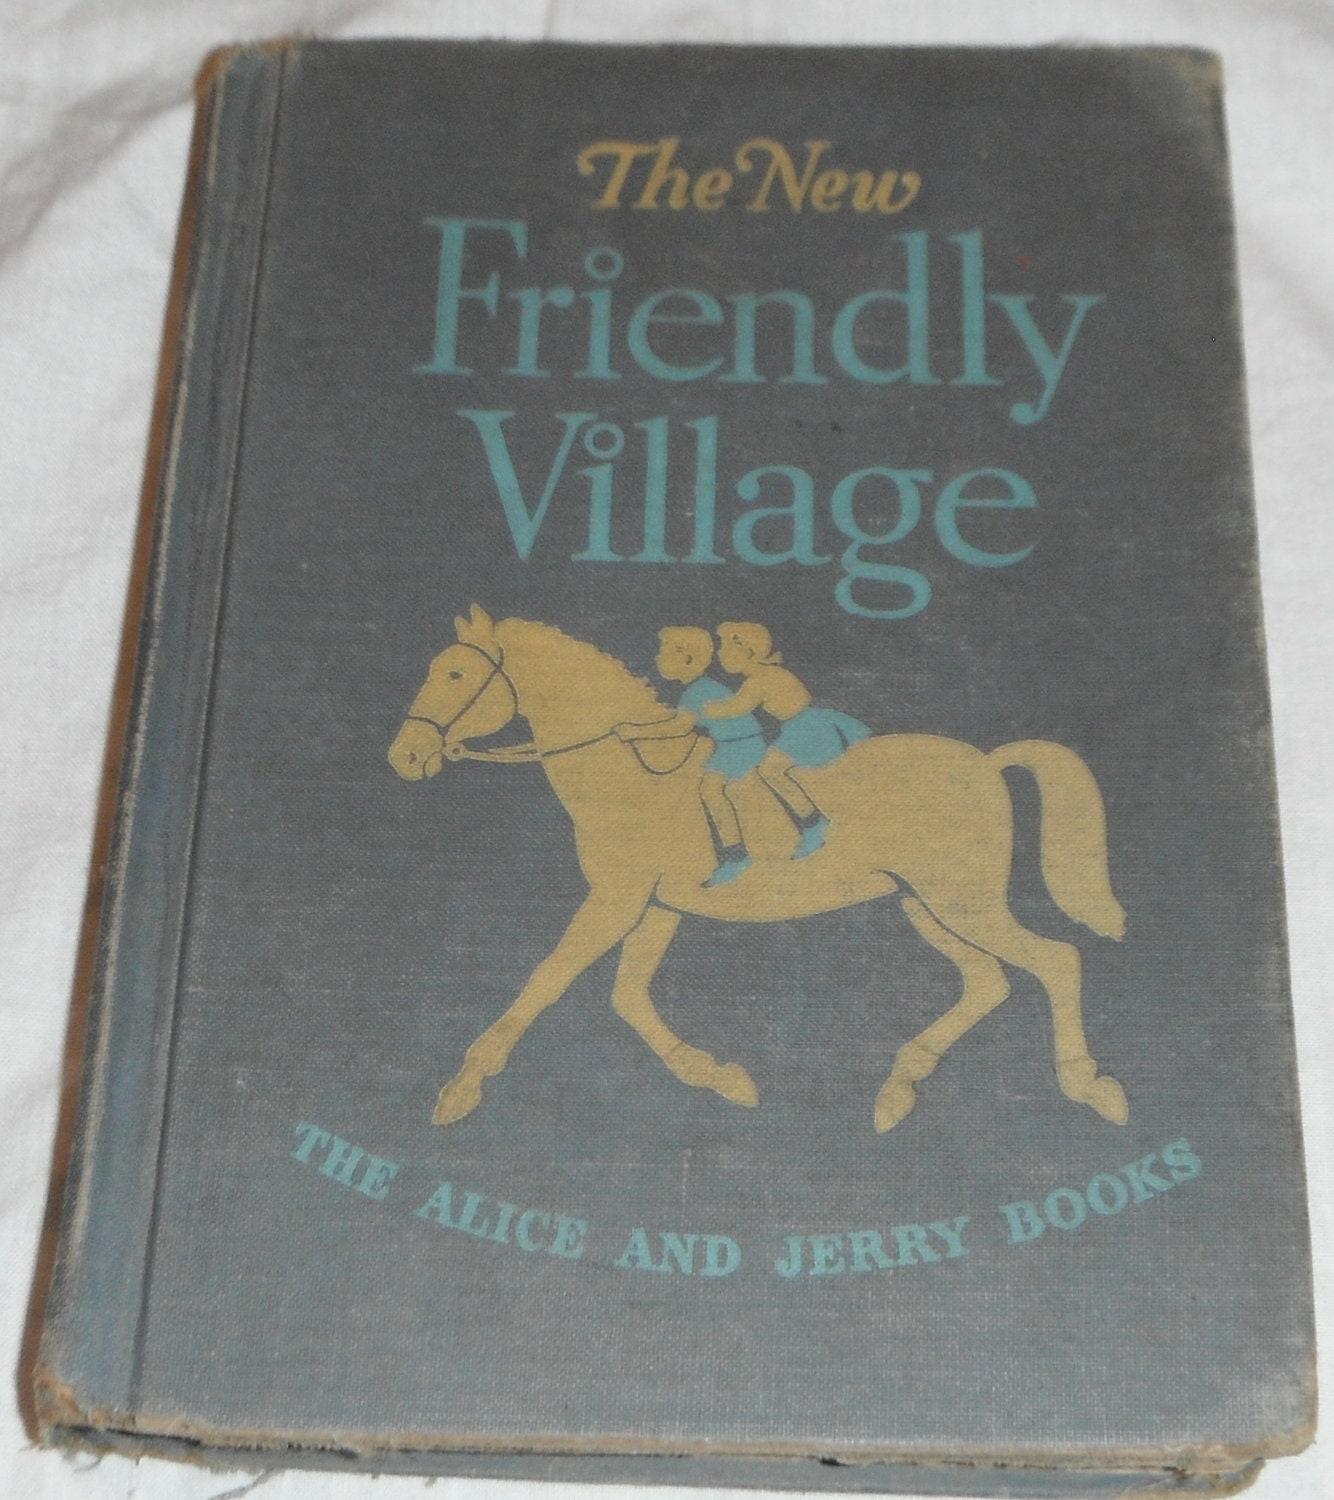 The New Friendly Village The Alice and Jerry Books 1950 school book